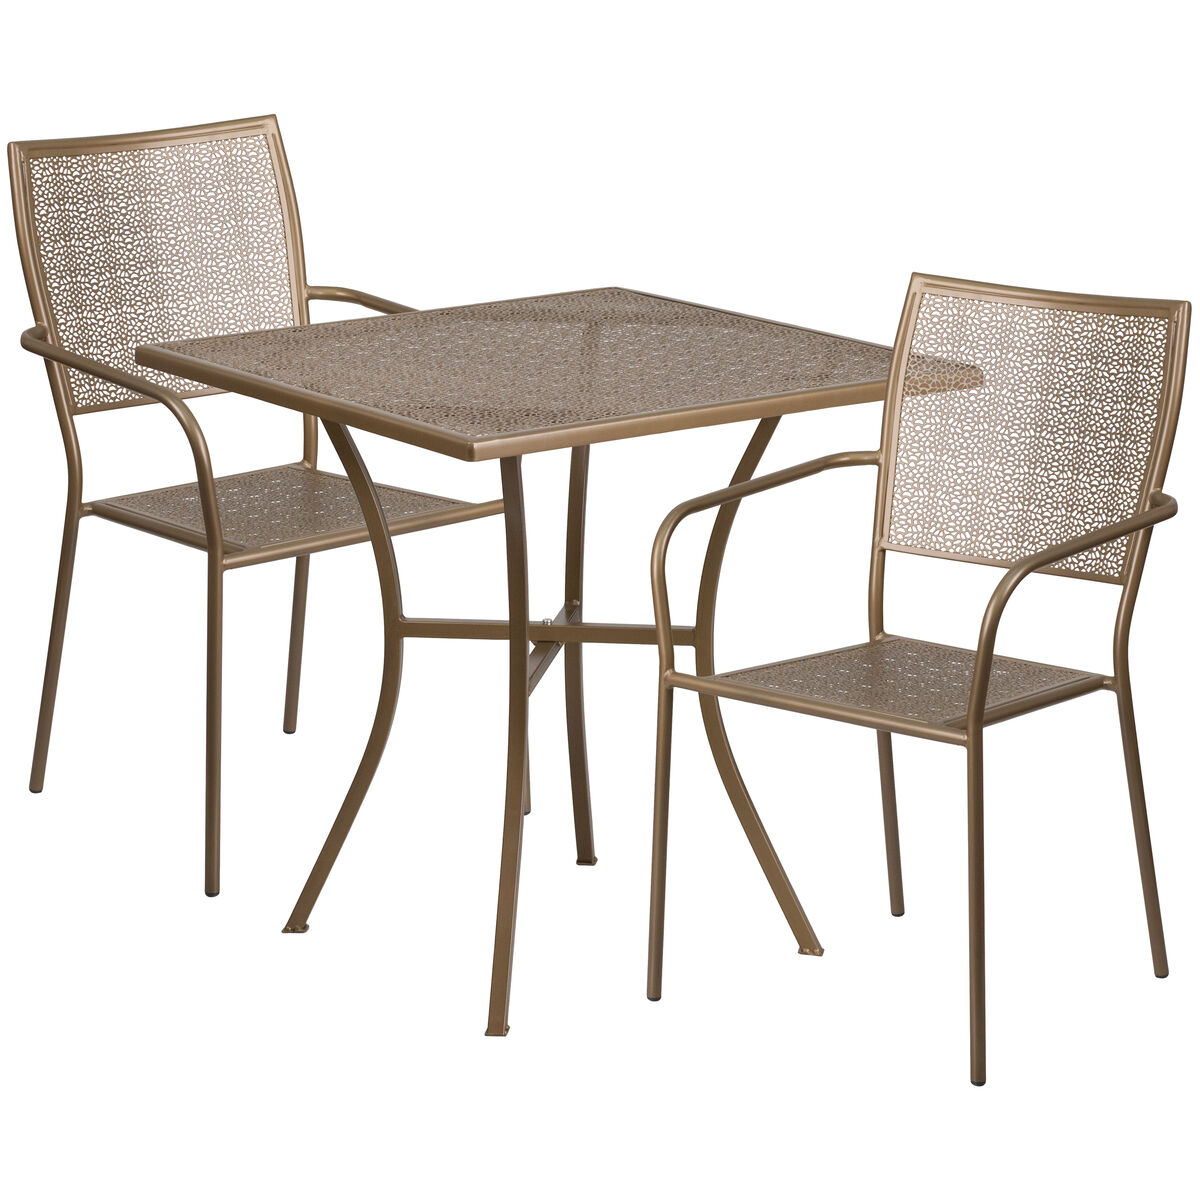 28SQ Gold Patio Table Set CO-28SQ-02CHR2-GD-GG | StackChairs4Less.com